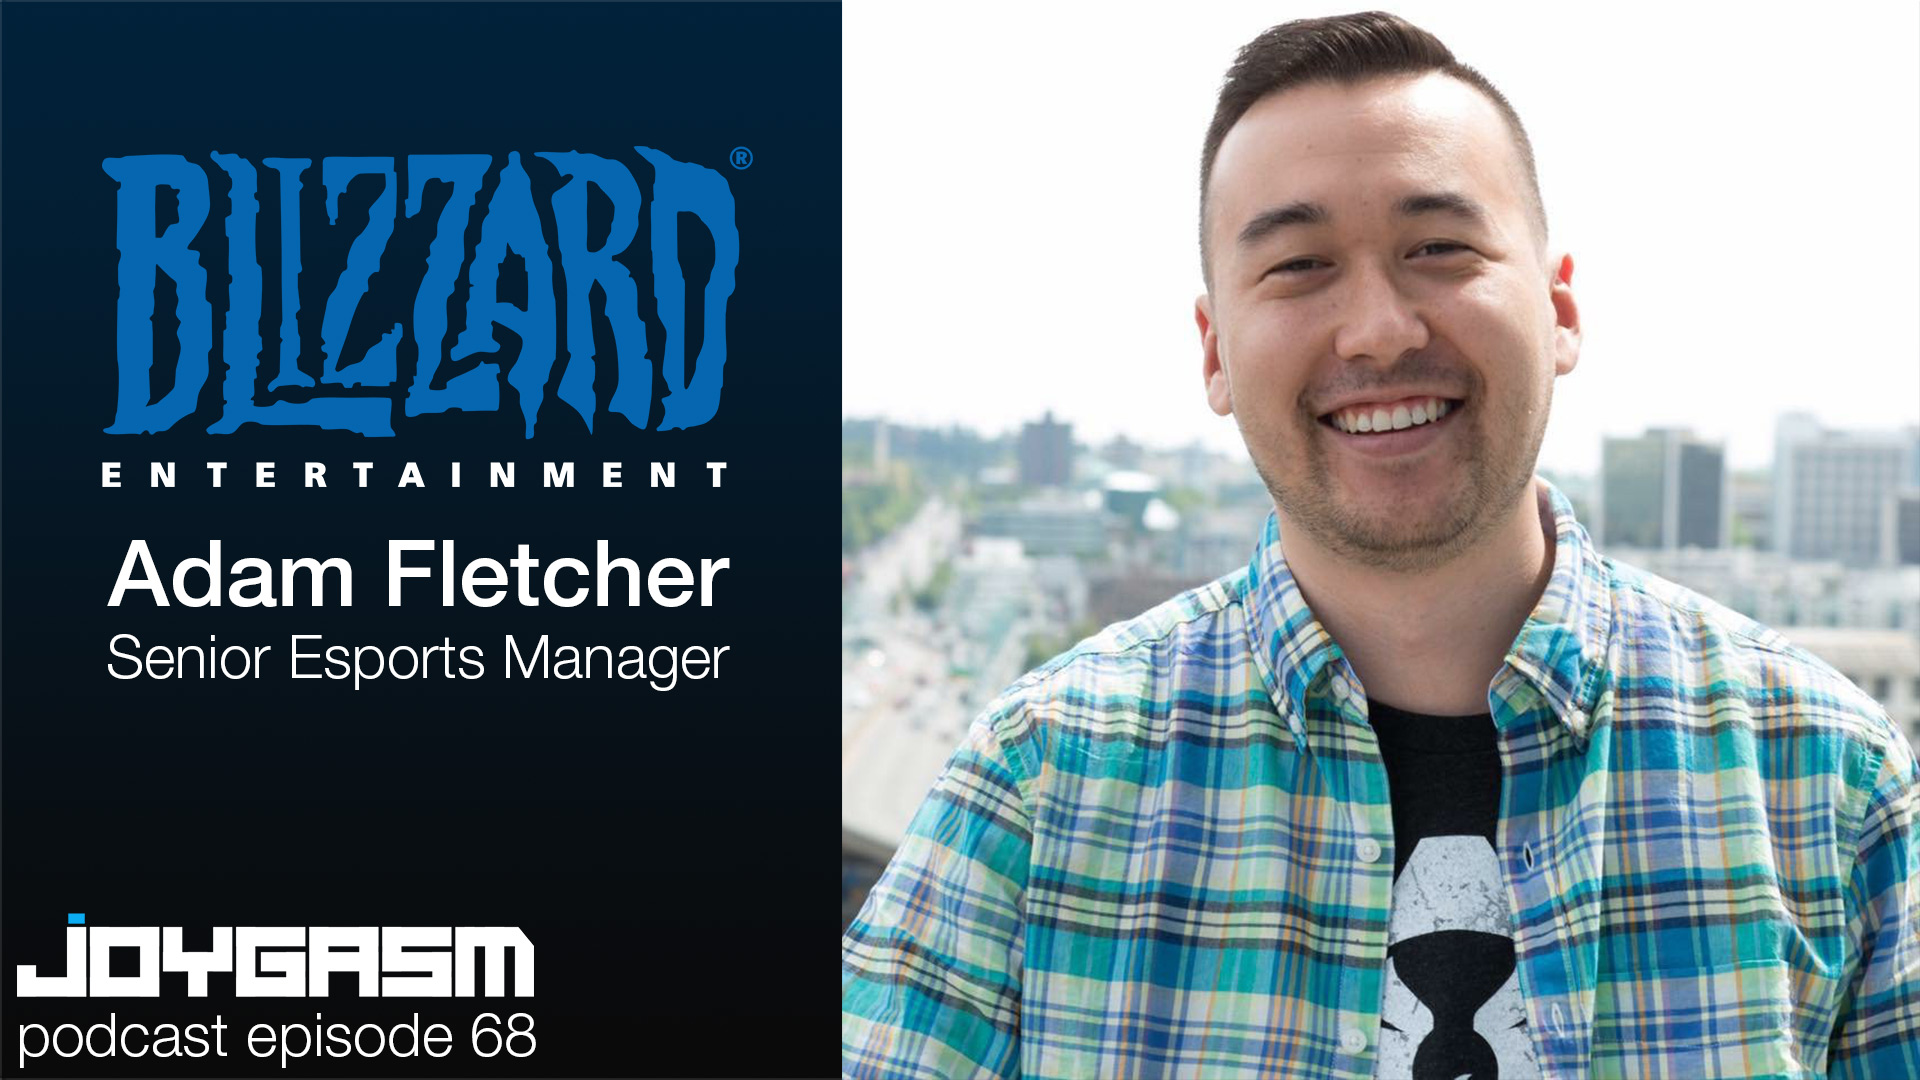 Ep. 68: Blizzard Entertainment's Sr. Esports Manager for Starcraft & Heroes Of The Storm, Adam Fletcher (Special Guest)